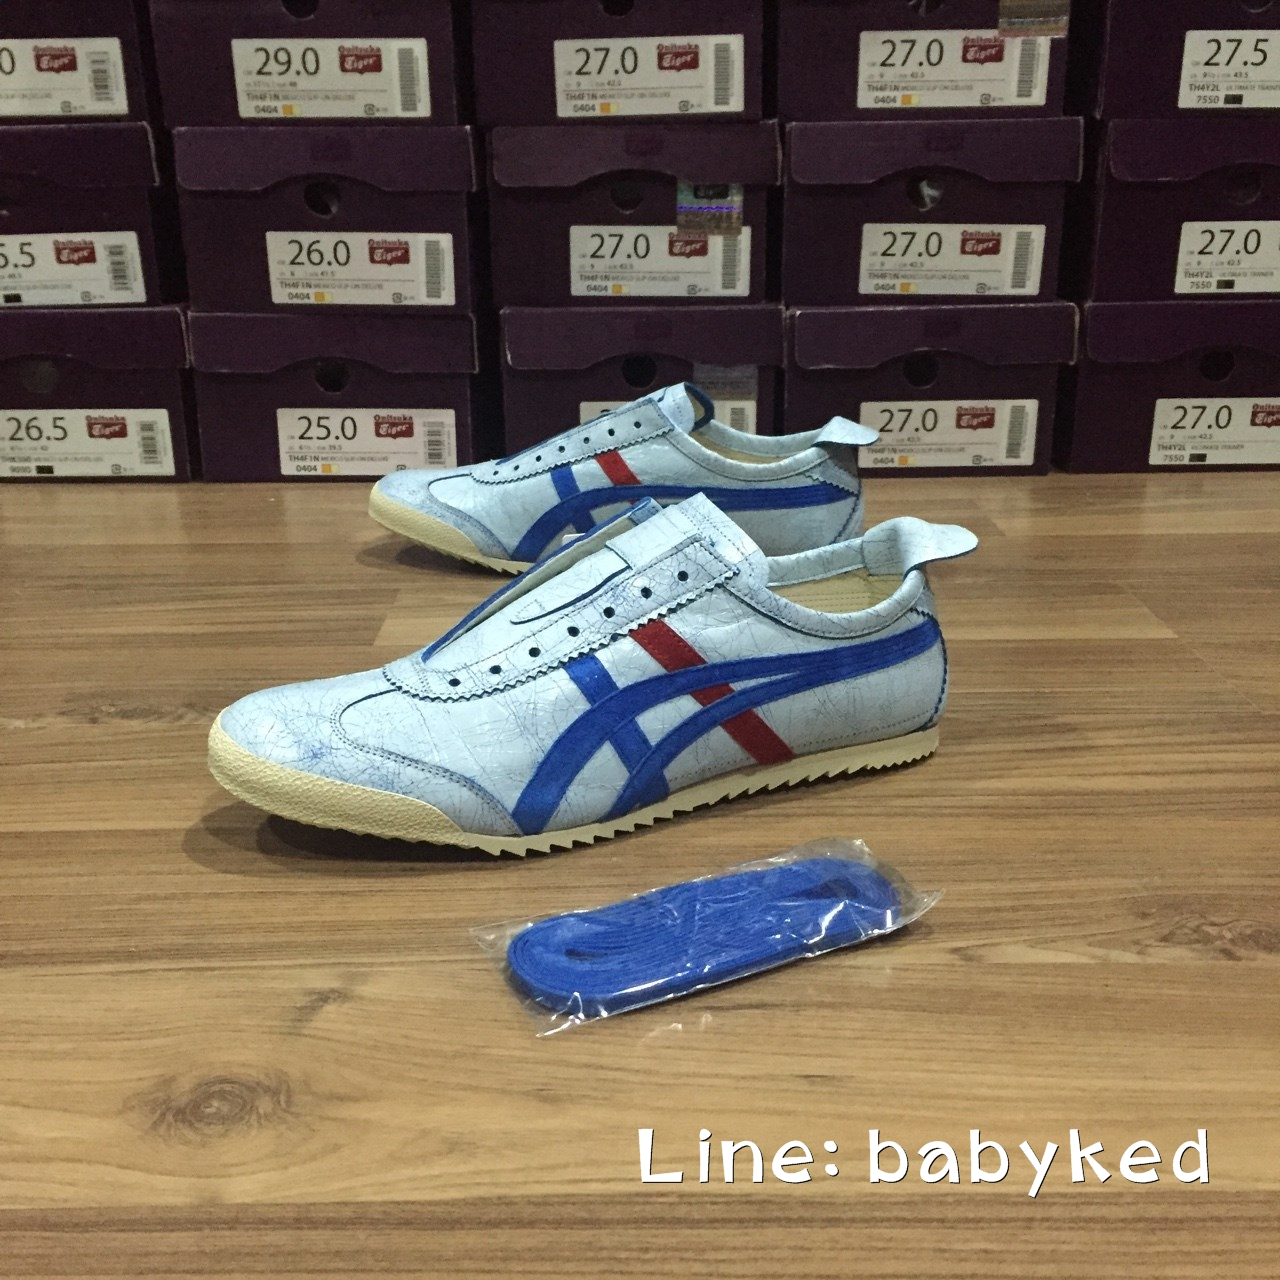 Limited Edition Nippon Made Deluxe [Made in Japan] Mexico 66 Slip-on หนังแตก (White/Blue) ของแท้100% ของใหม่มีกล่องป้ายครบ 10,400 บาท